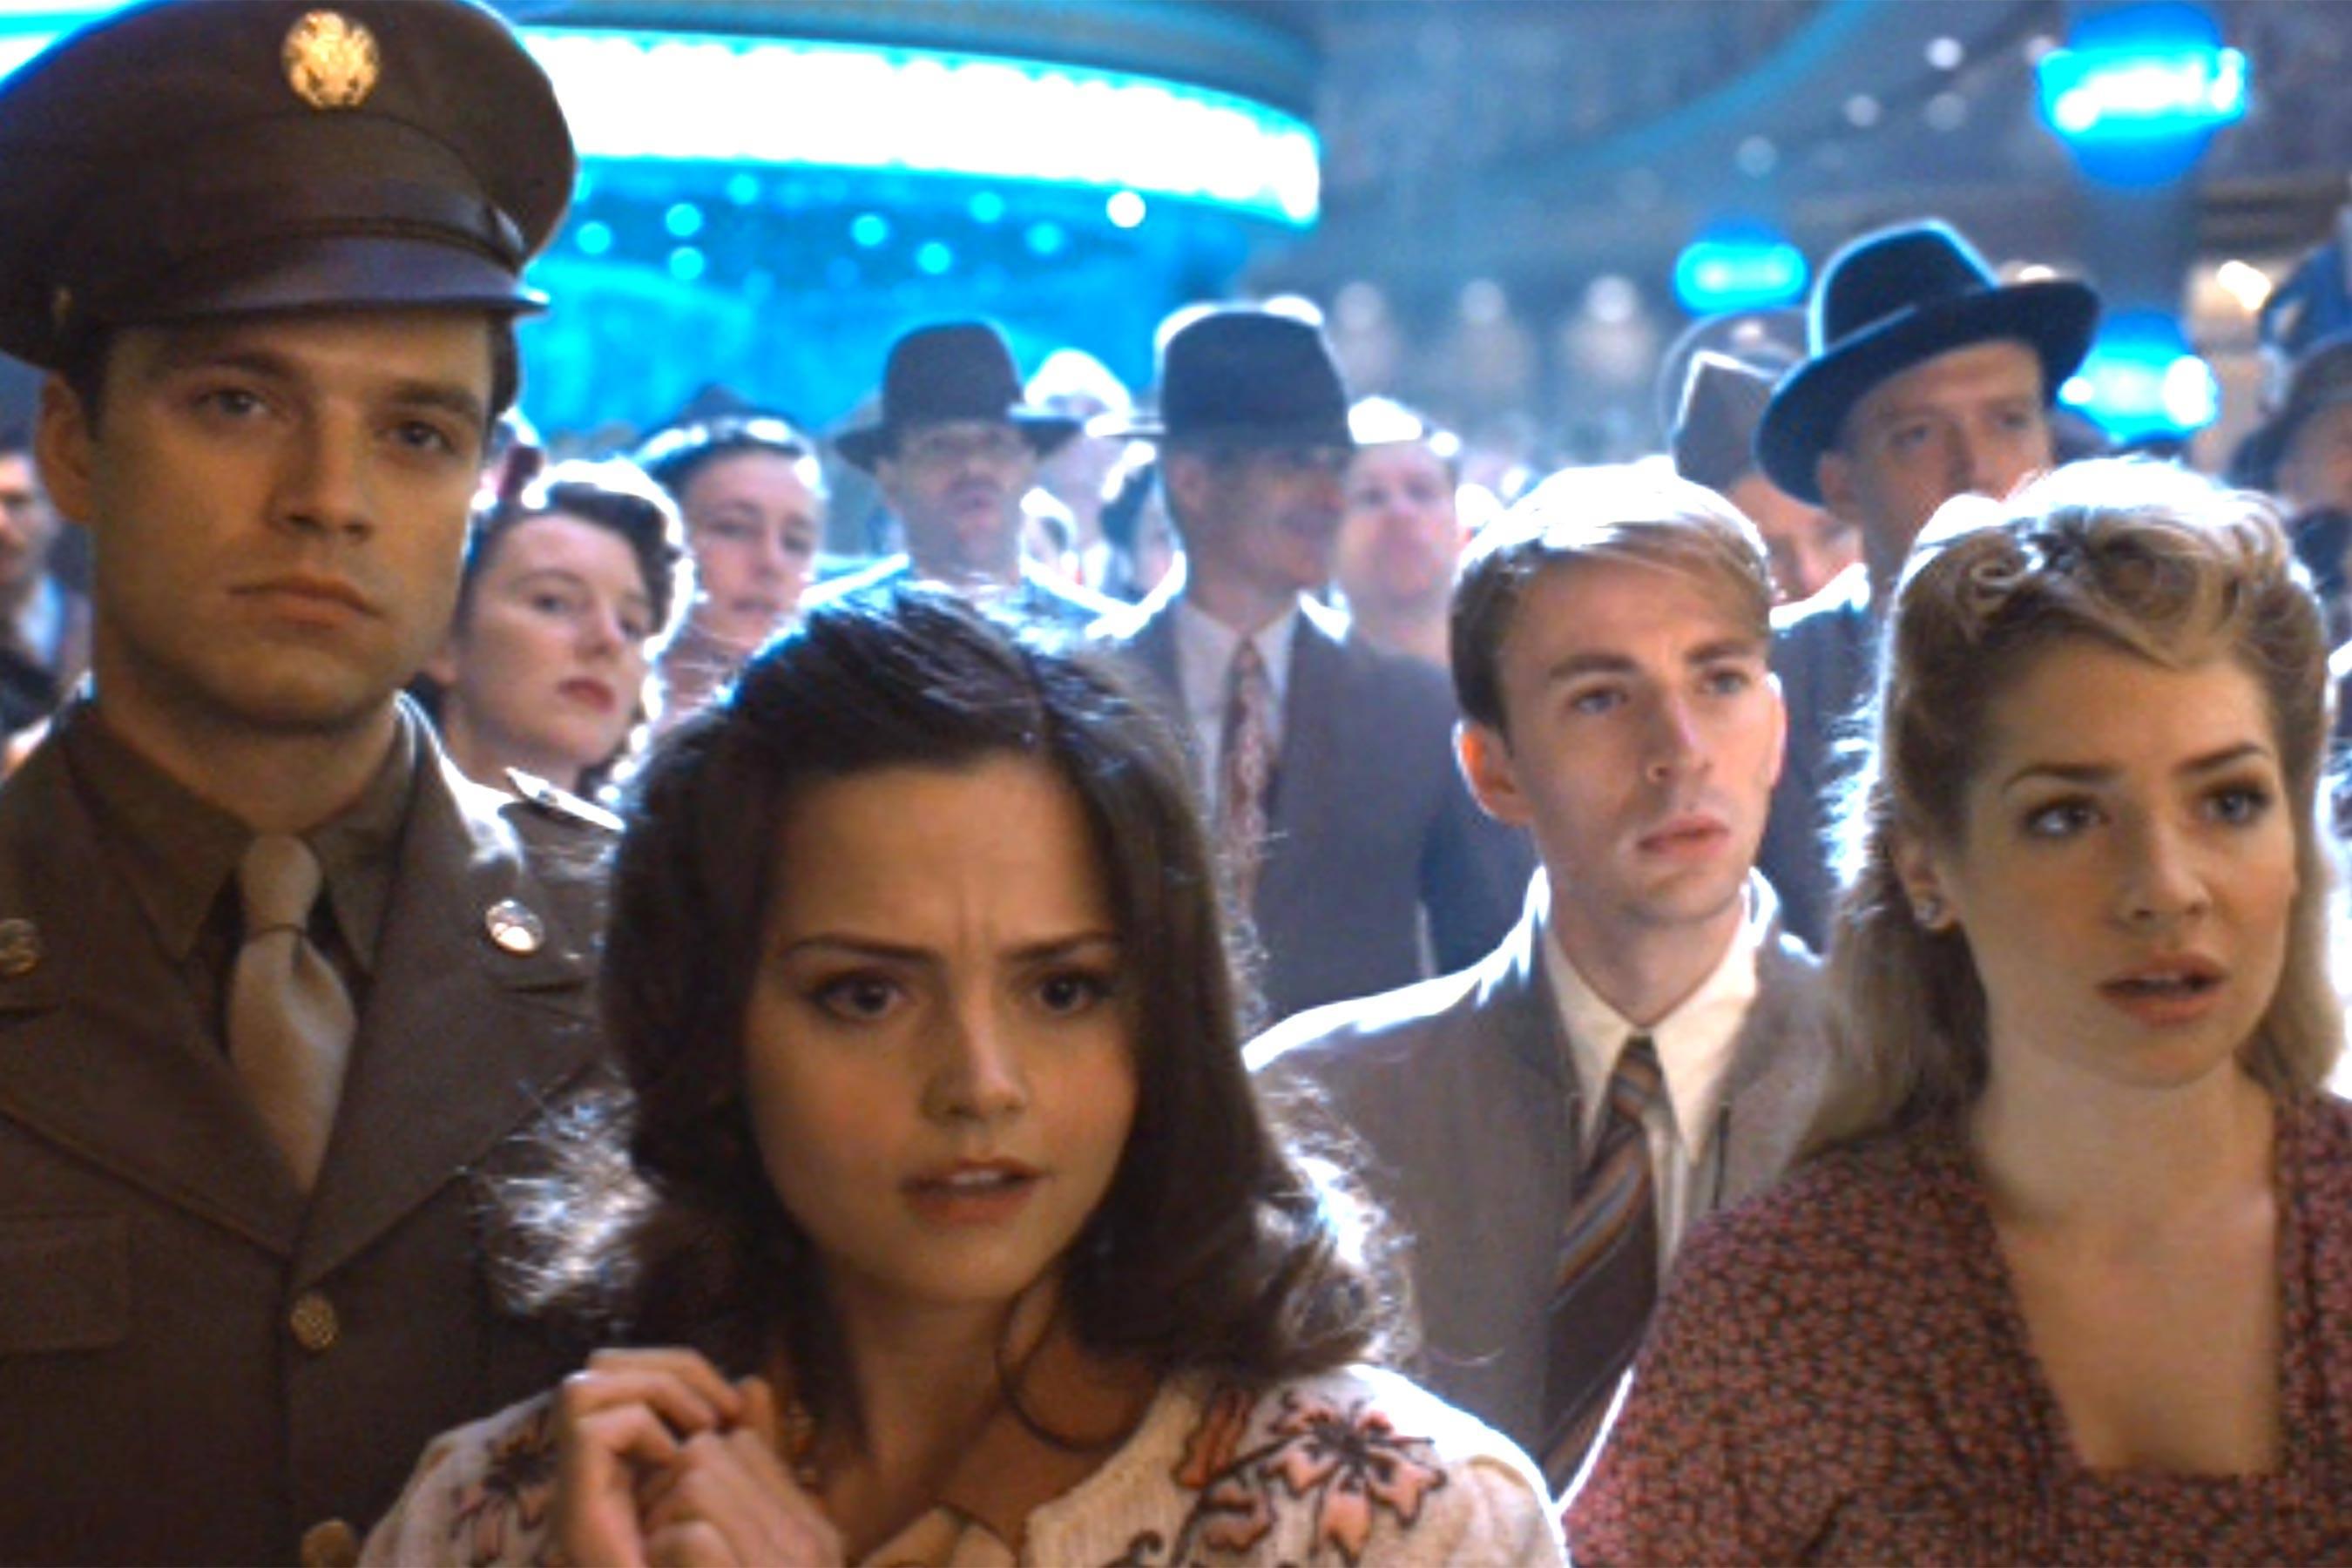 Jenna Coleman in Captain America: The First Avenger